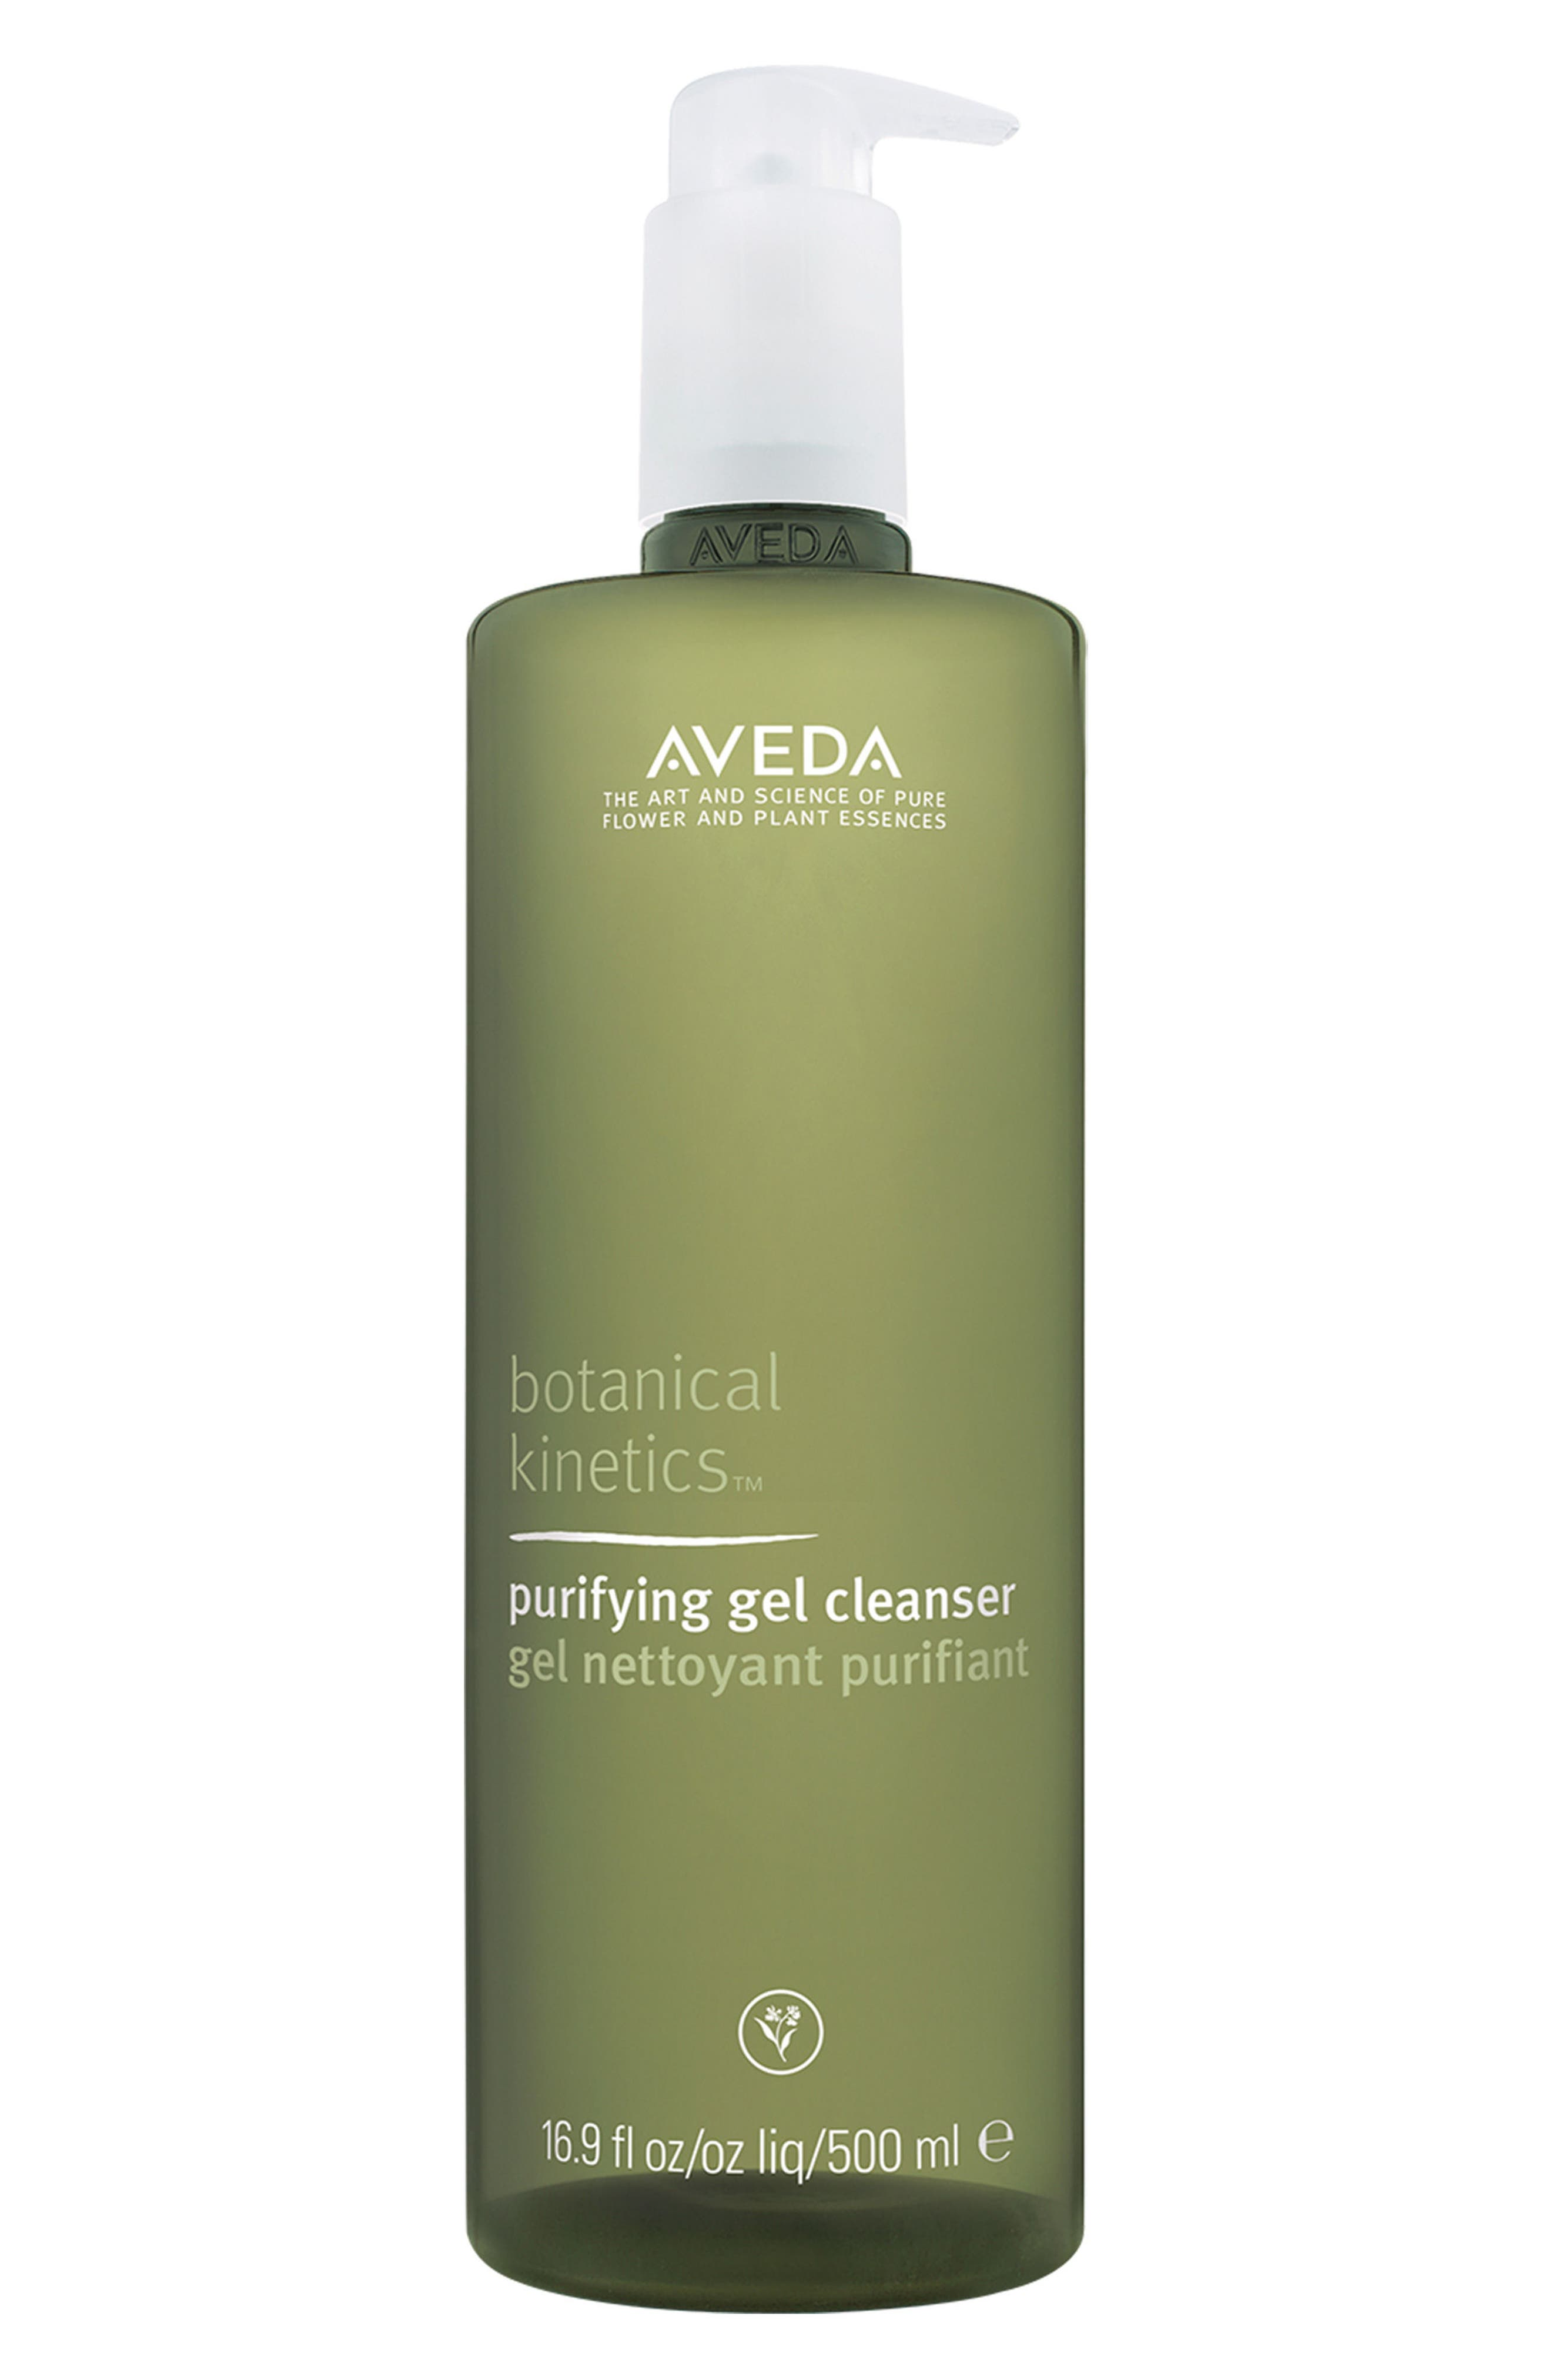 Main Image - Aveda 'botanical kinetics™' Purifying Gel Cleanser